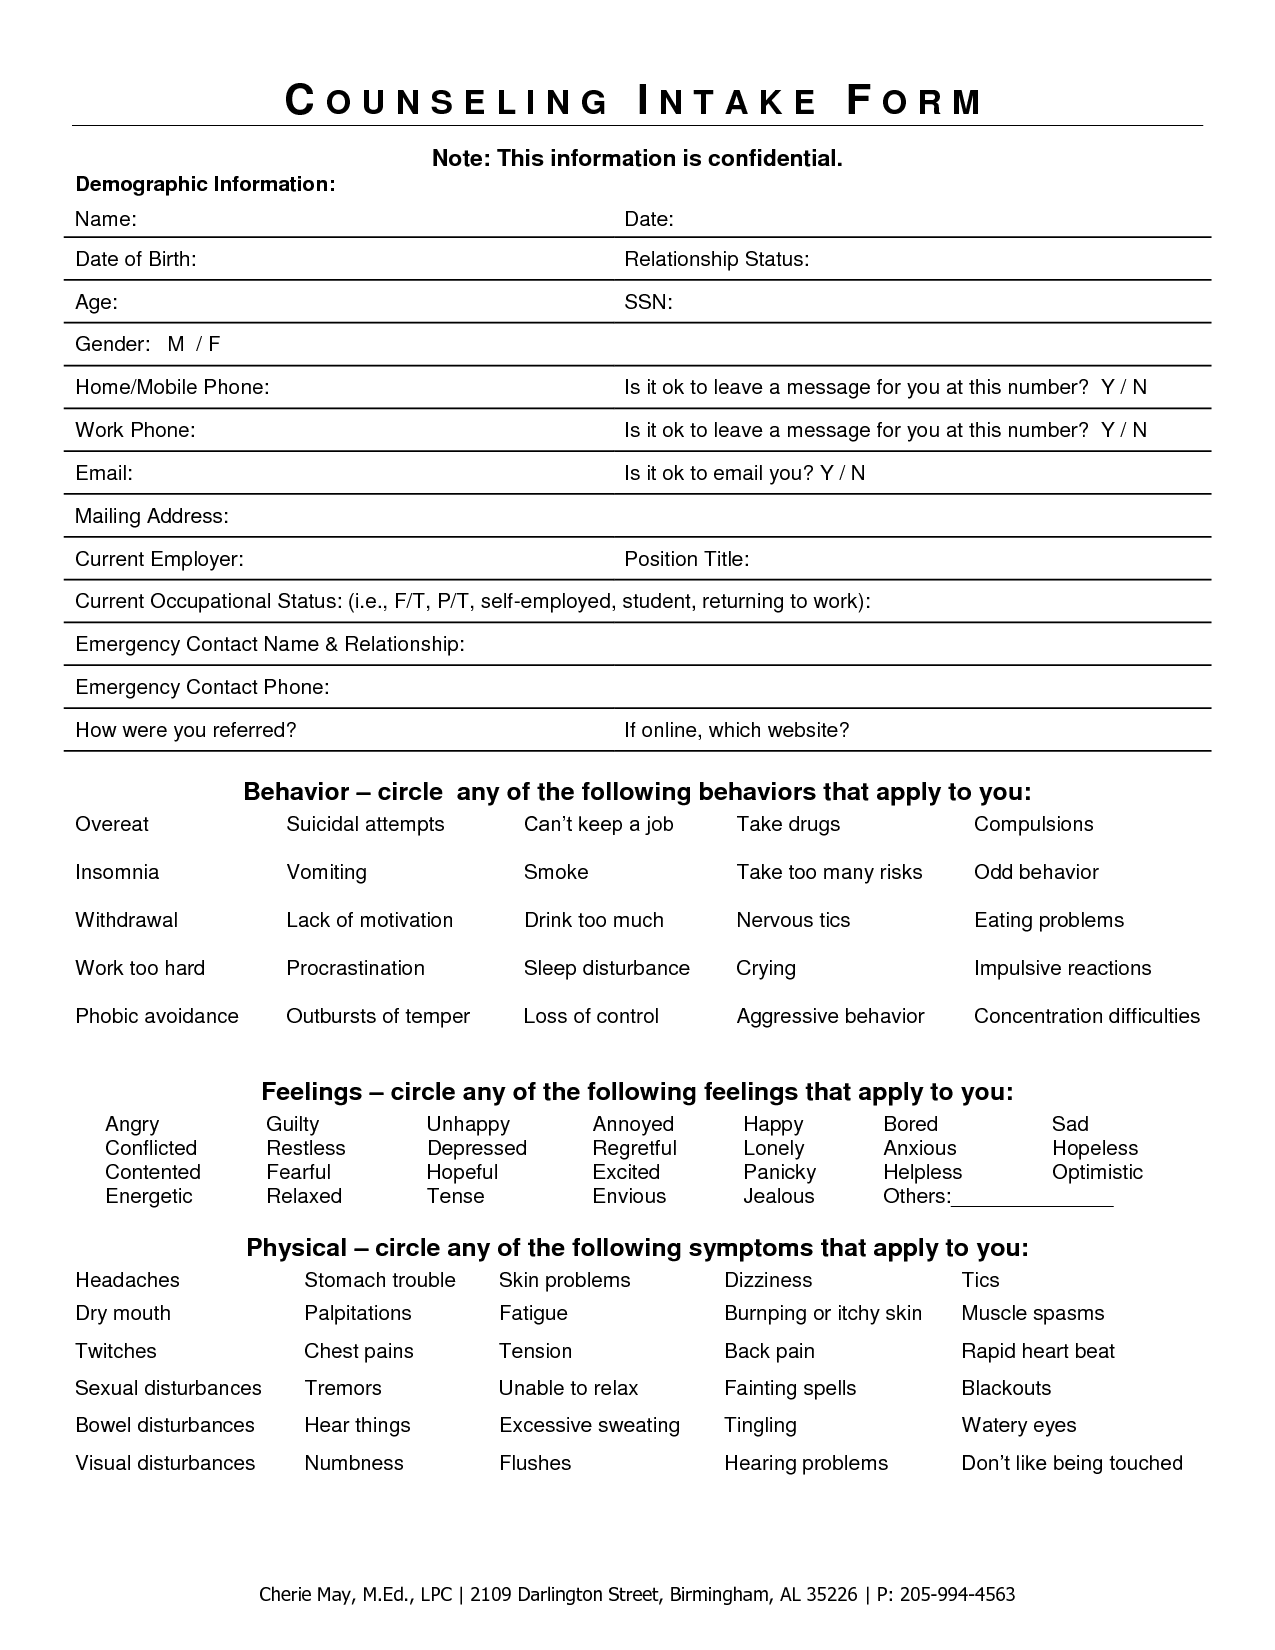 Intake Form For Counseling Clients  Google Search  Career